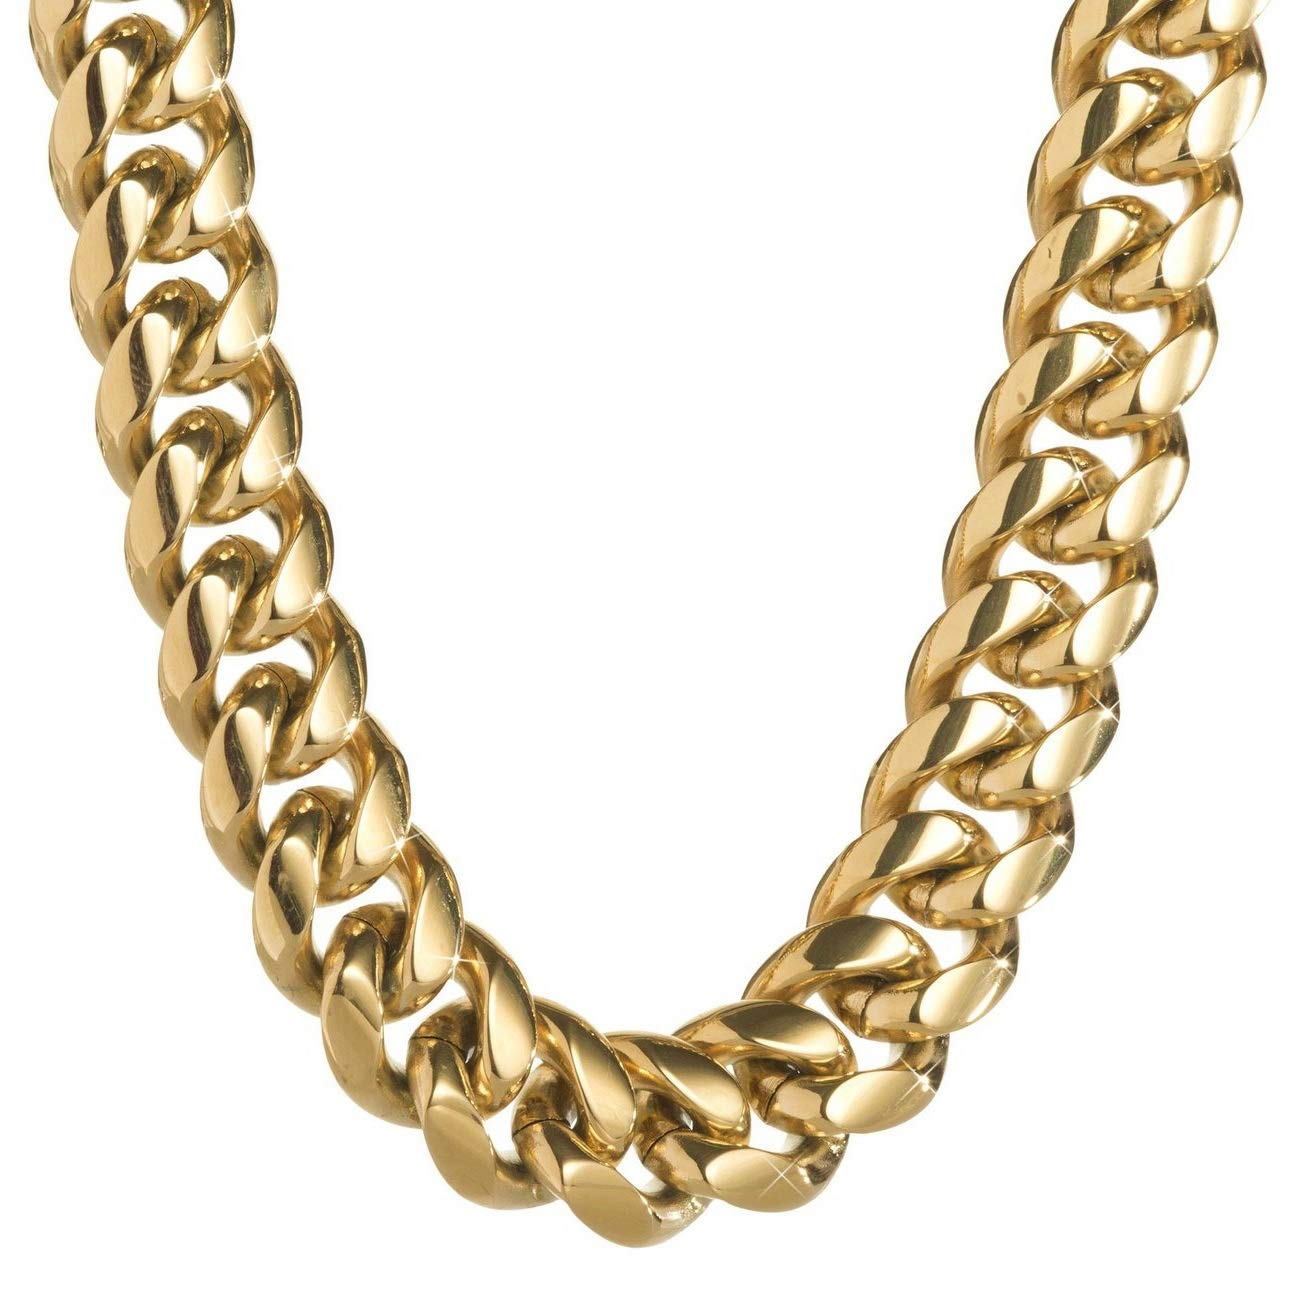 dd4c10290f702 TRIPOD JEWELRY Heavy Thick Men's Miami Cuban Link Chain Bracelet- 18K Gold  Plated Stainless Steel 10mm,12mm,14mm Cuban Link Necklace Gold Plated Cuban  ...